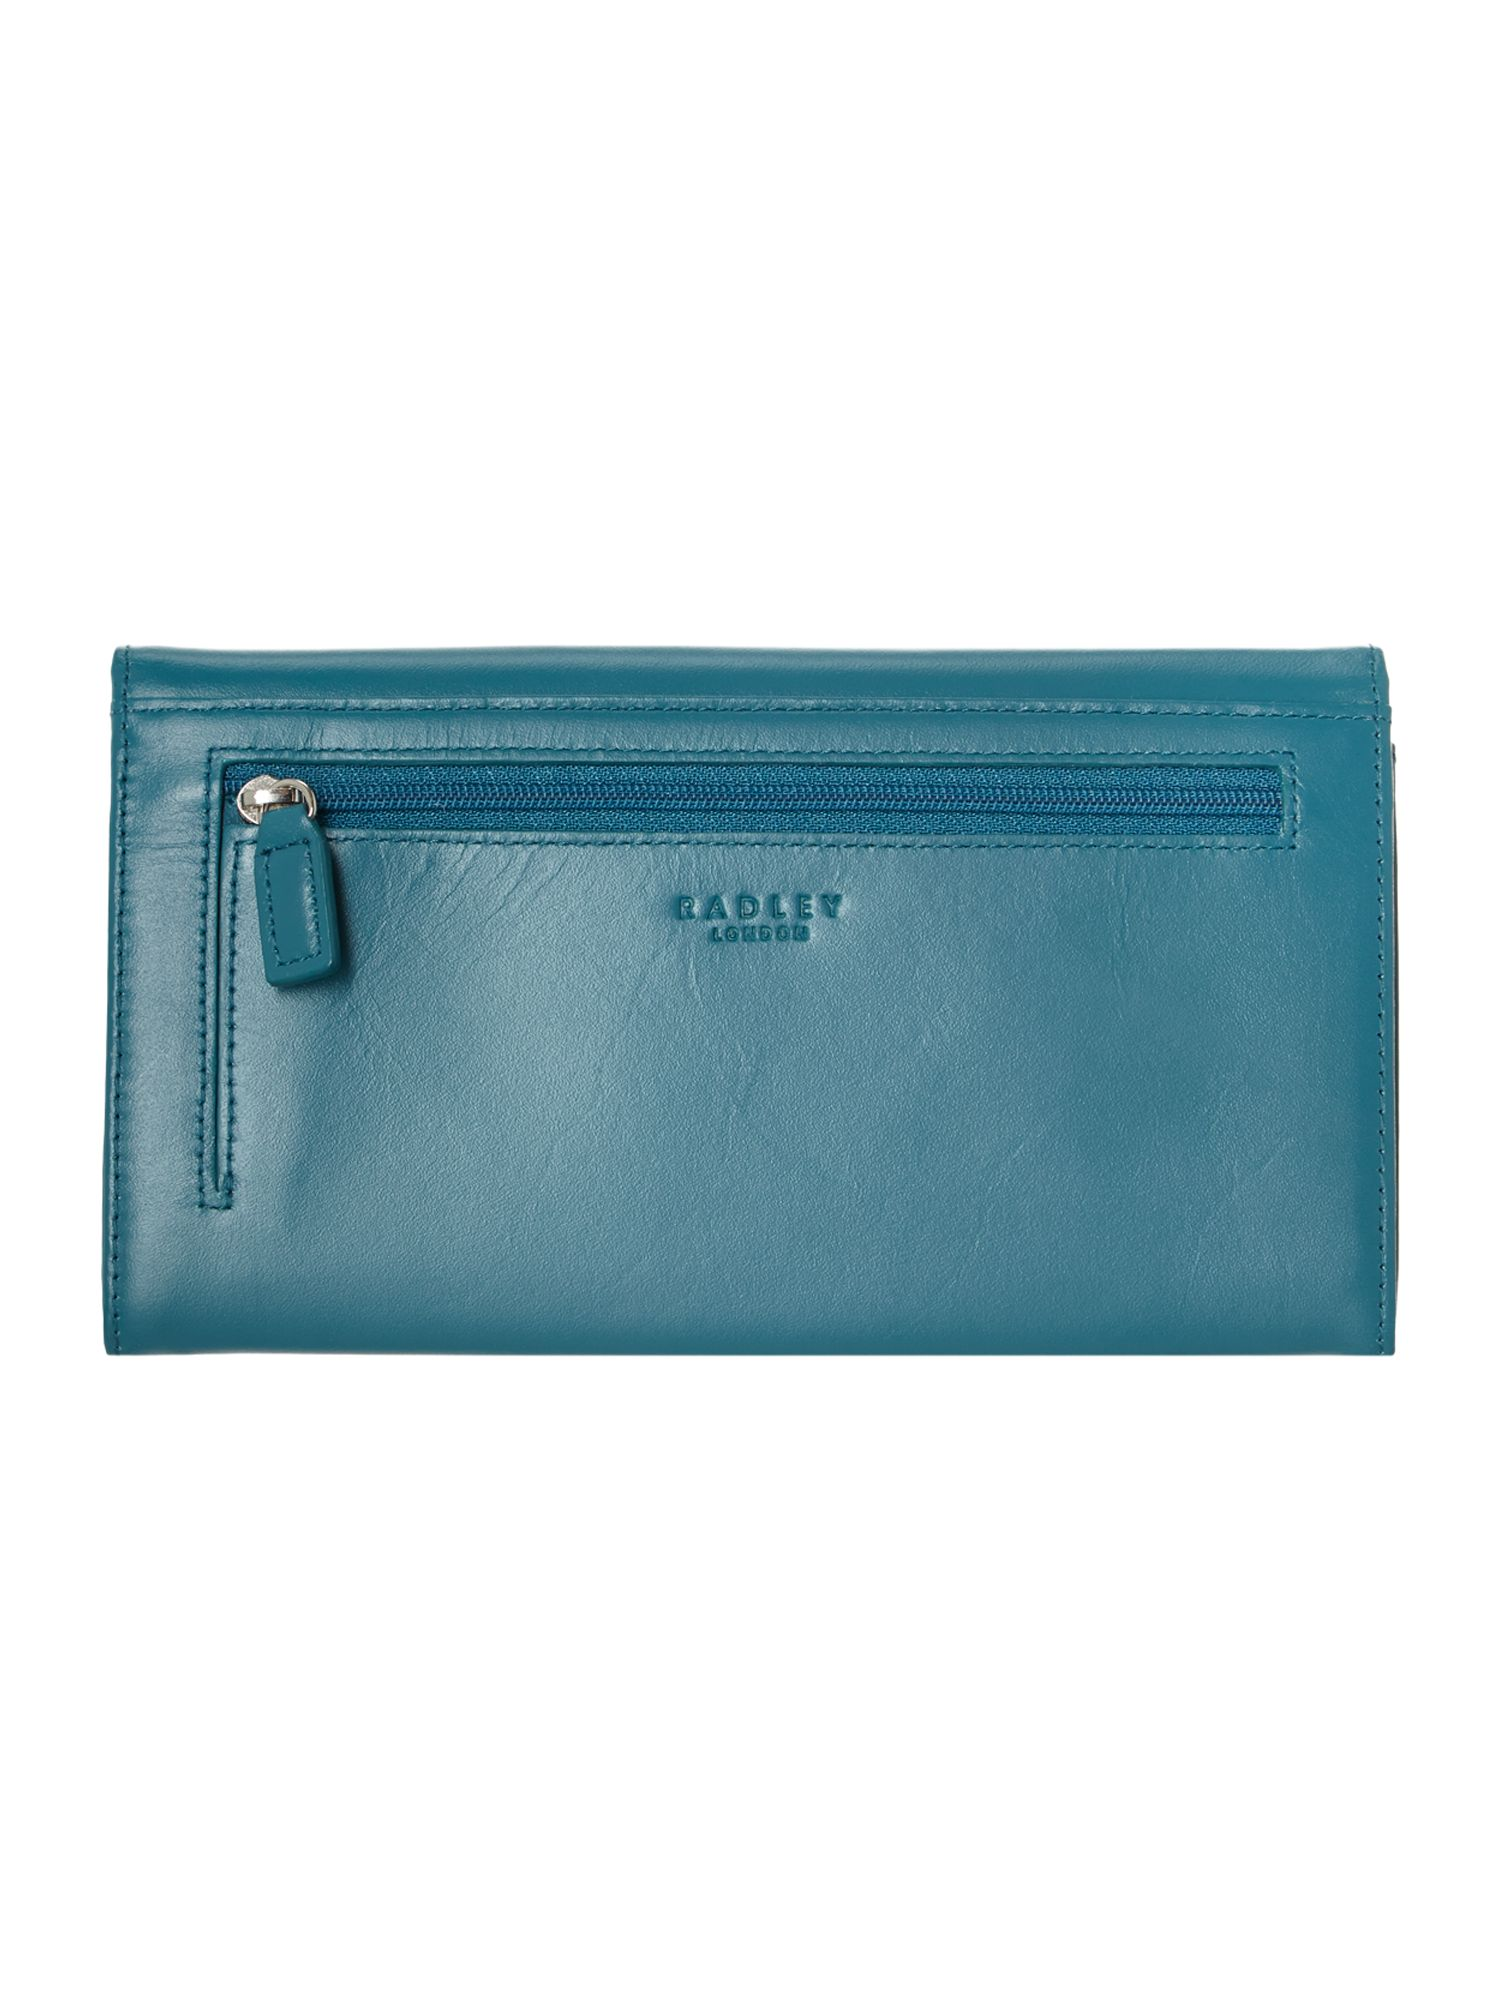 Radley express blue large flap over purse